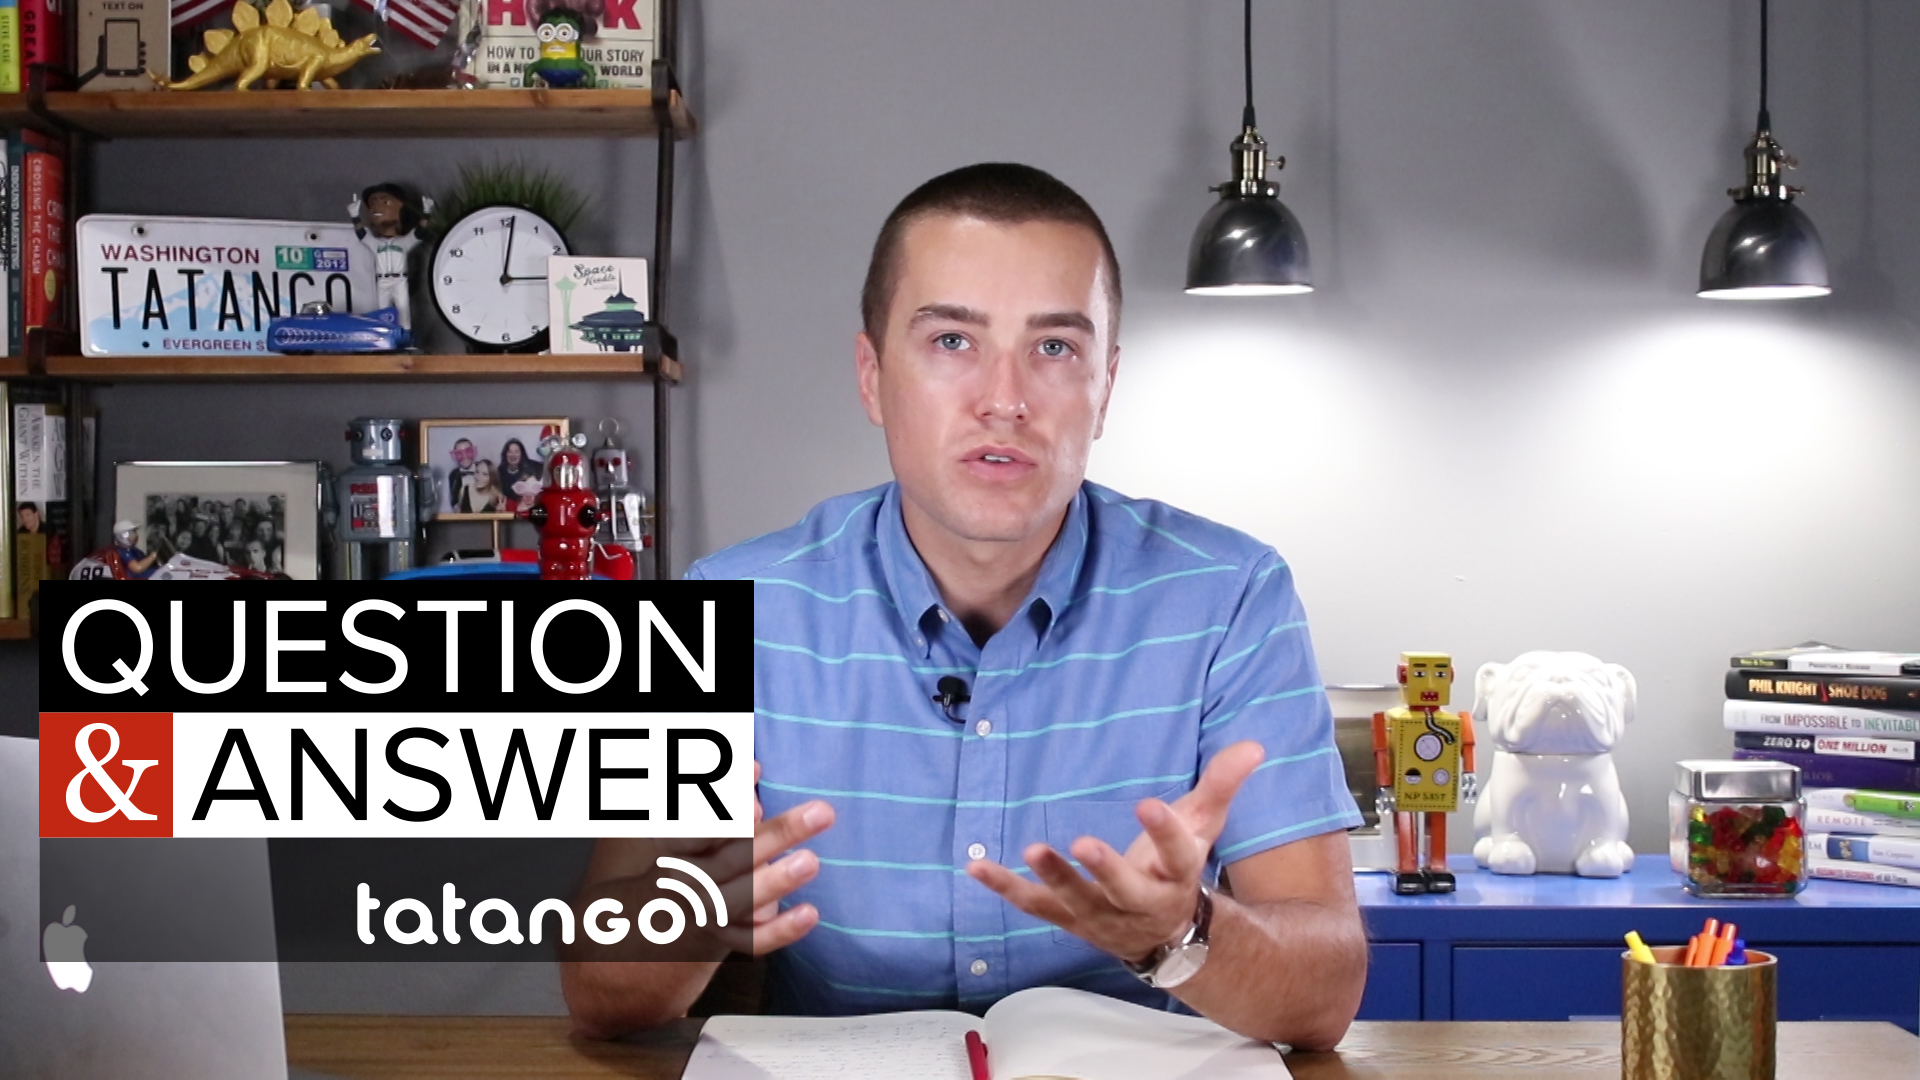 How Does Tatango Pricing Work?